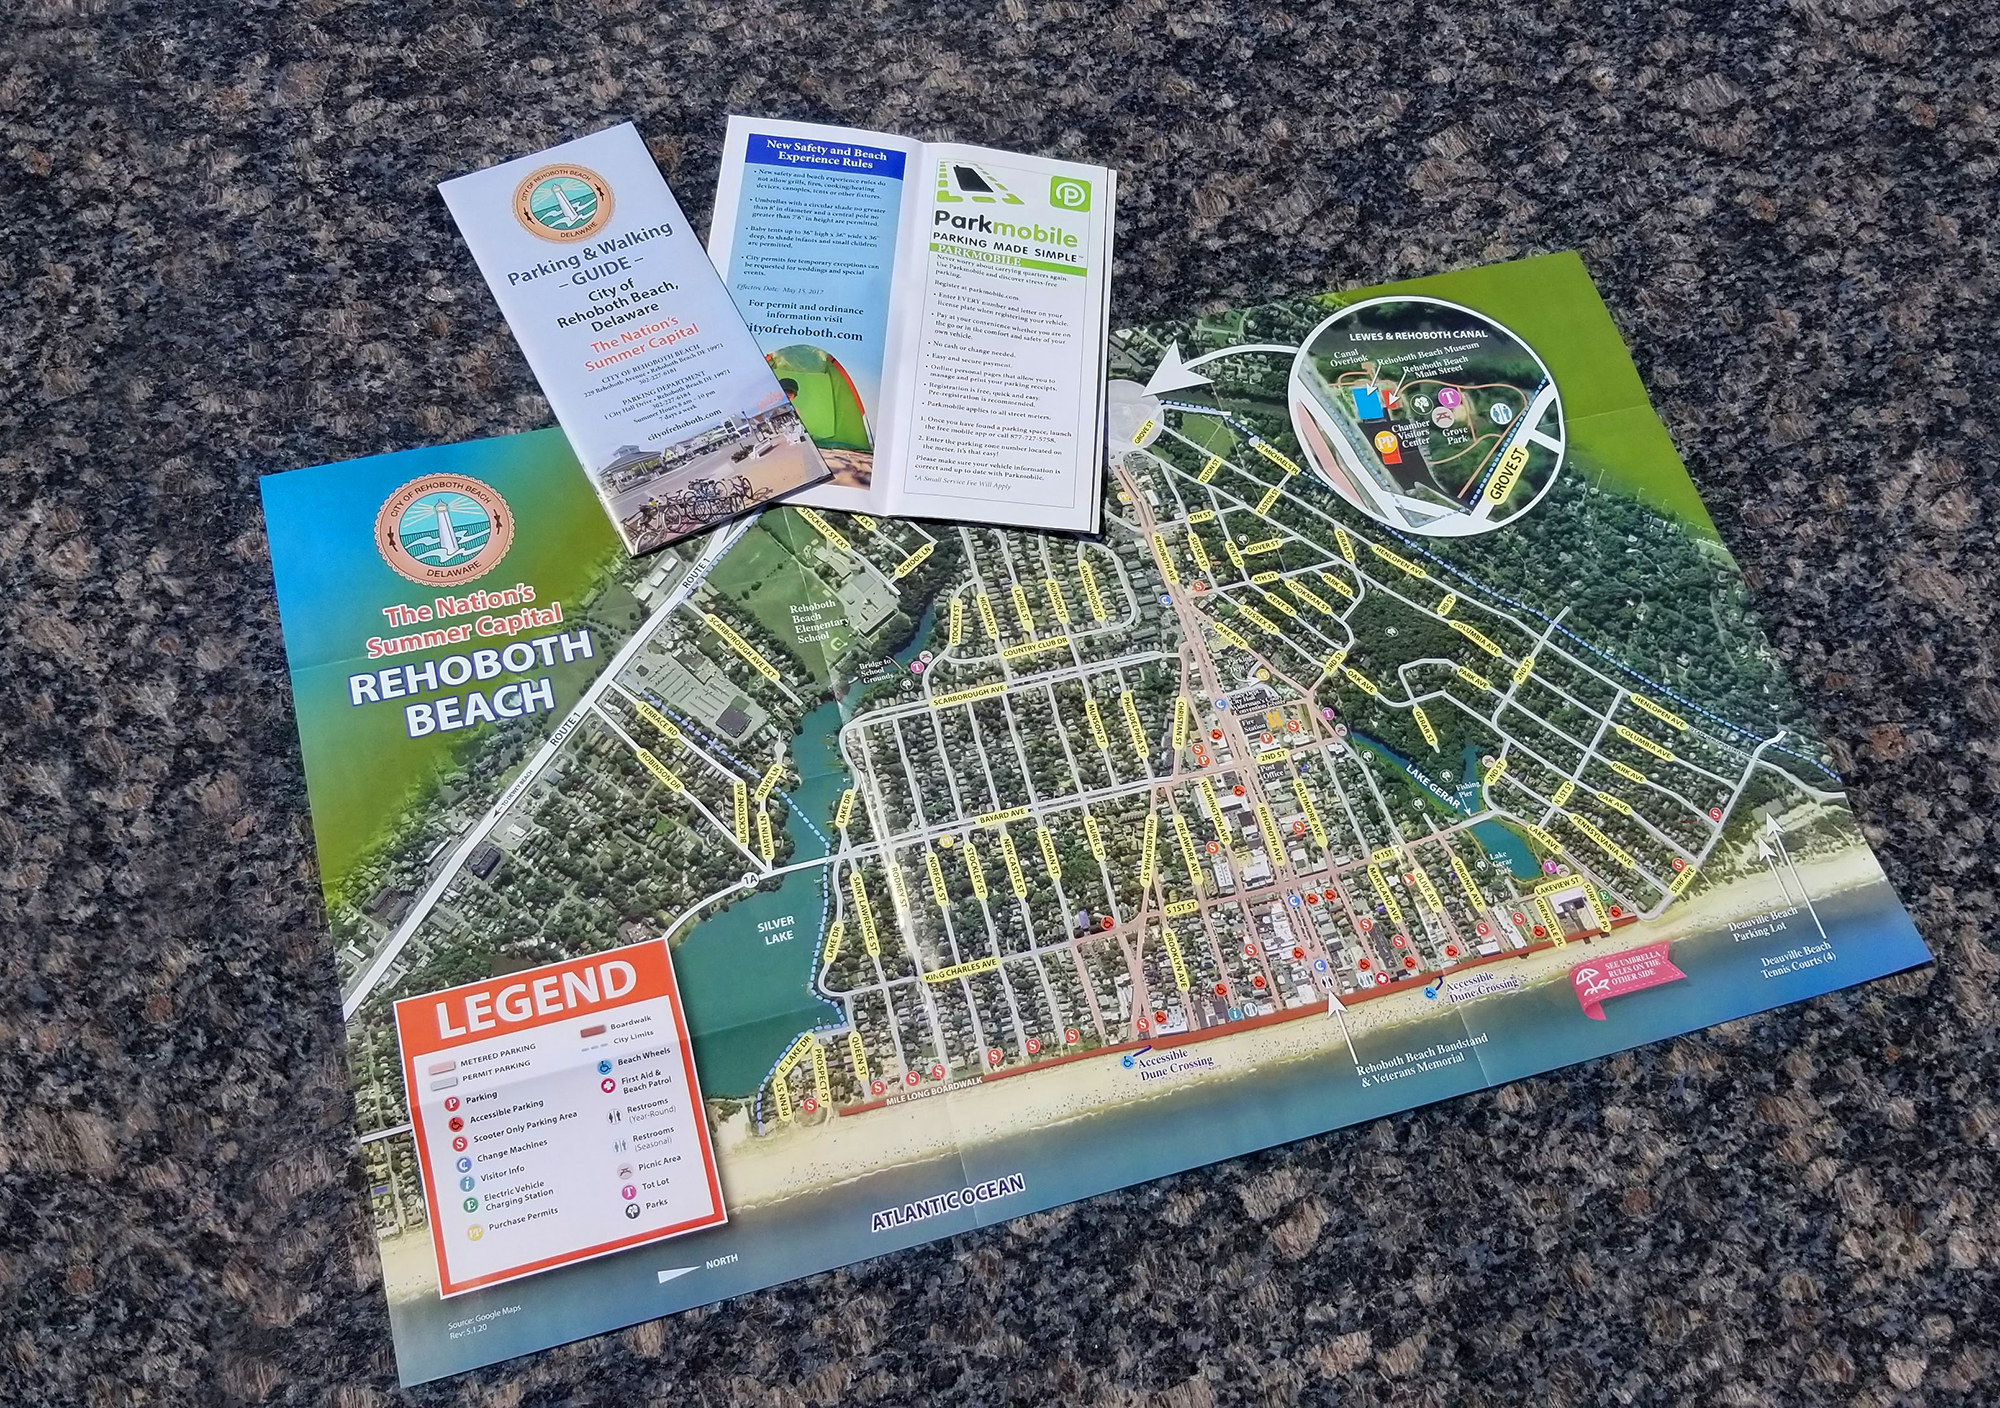 City of Rehoboth Beach Parking & Walking guide and map illustration by iKANDE web design